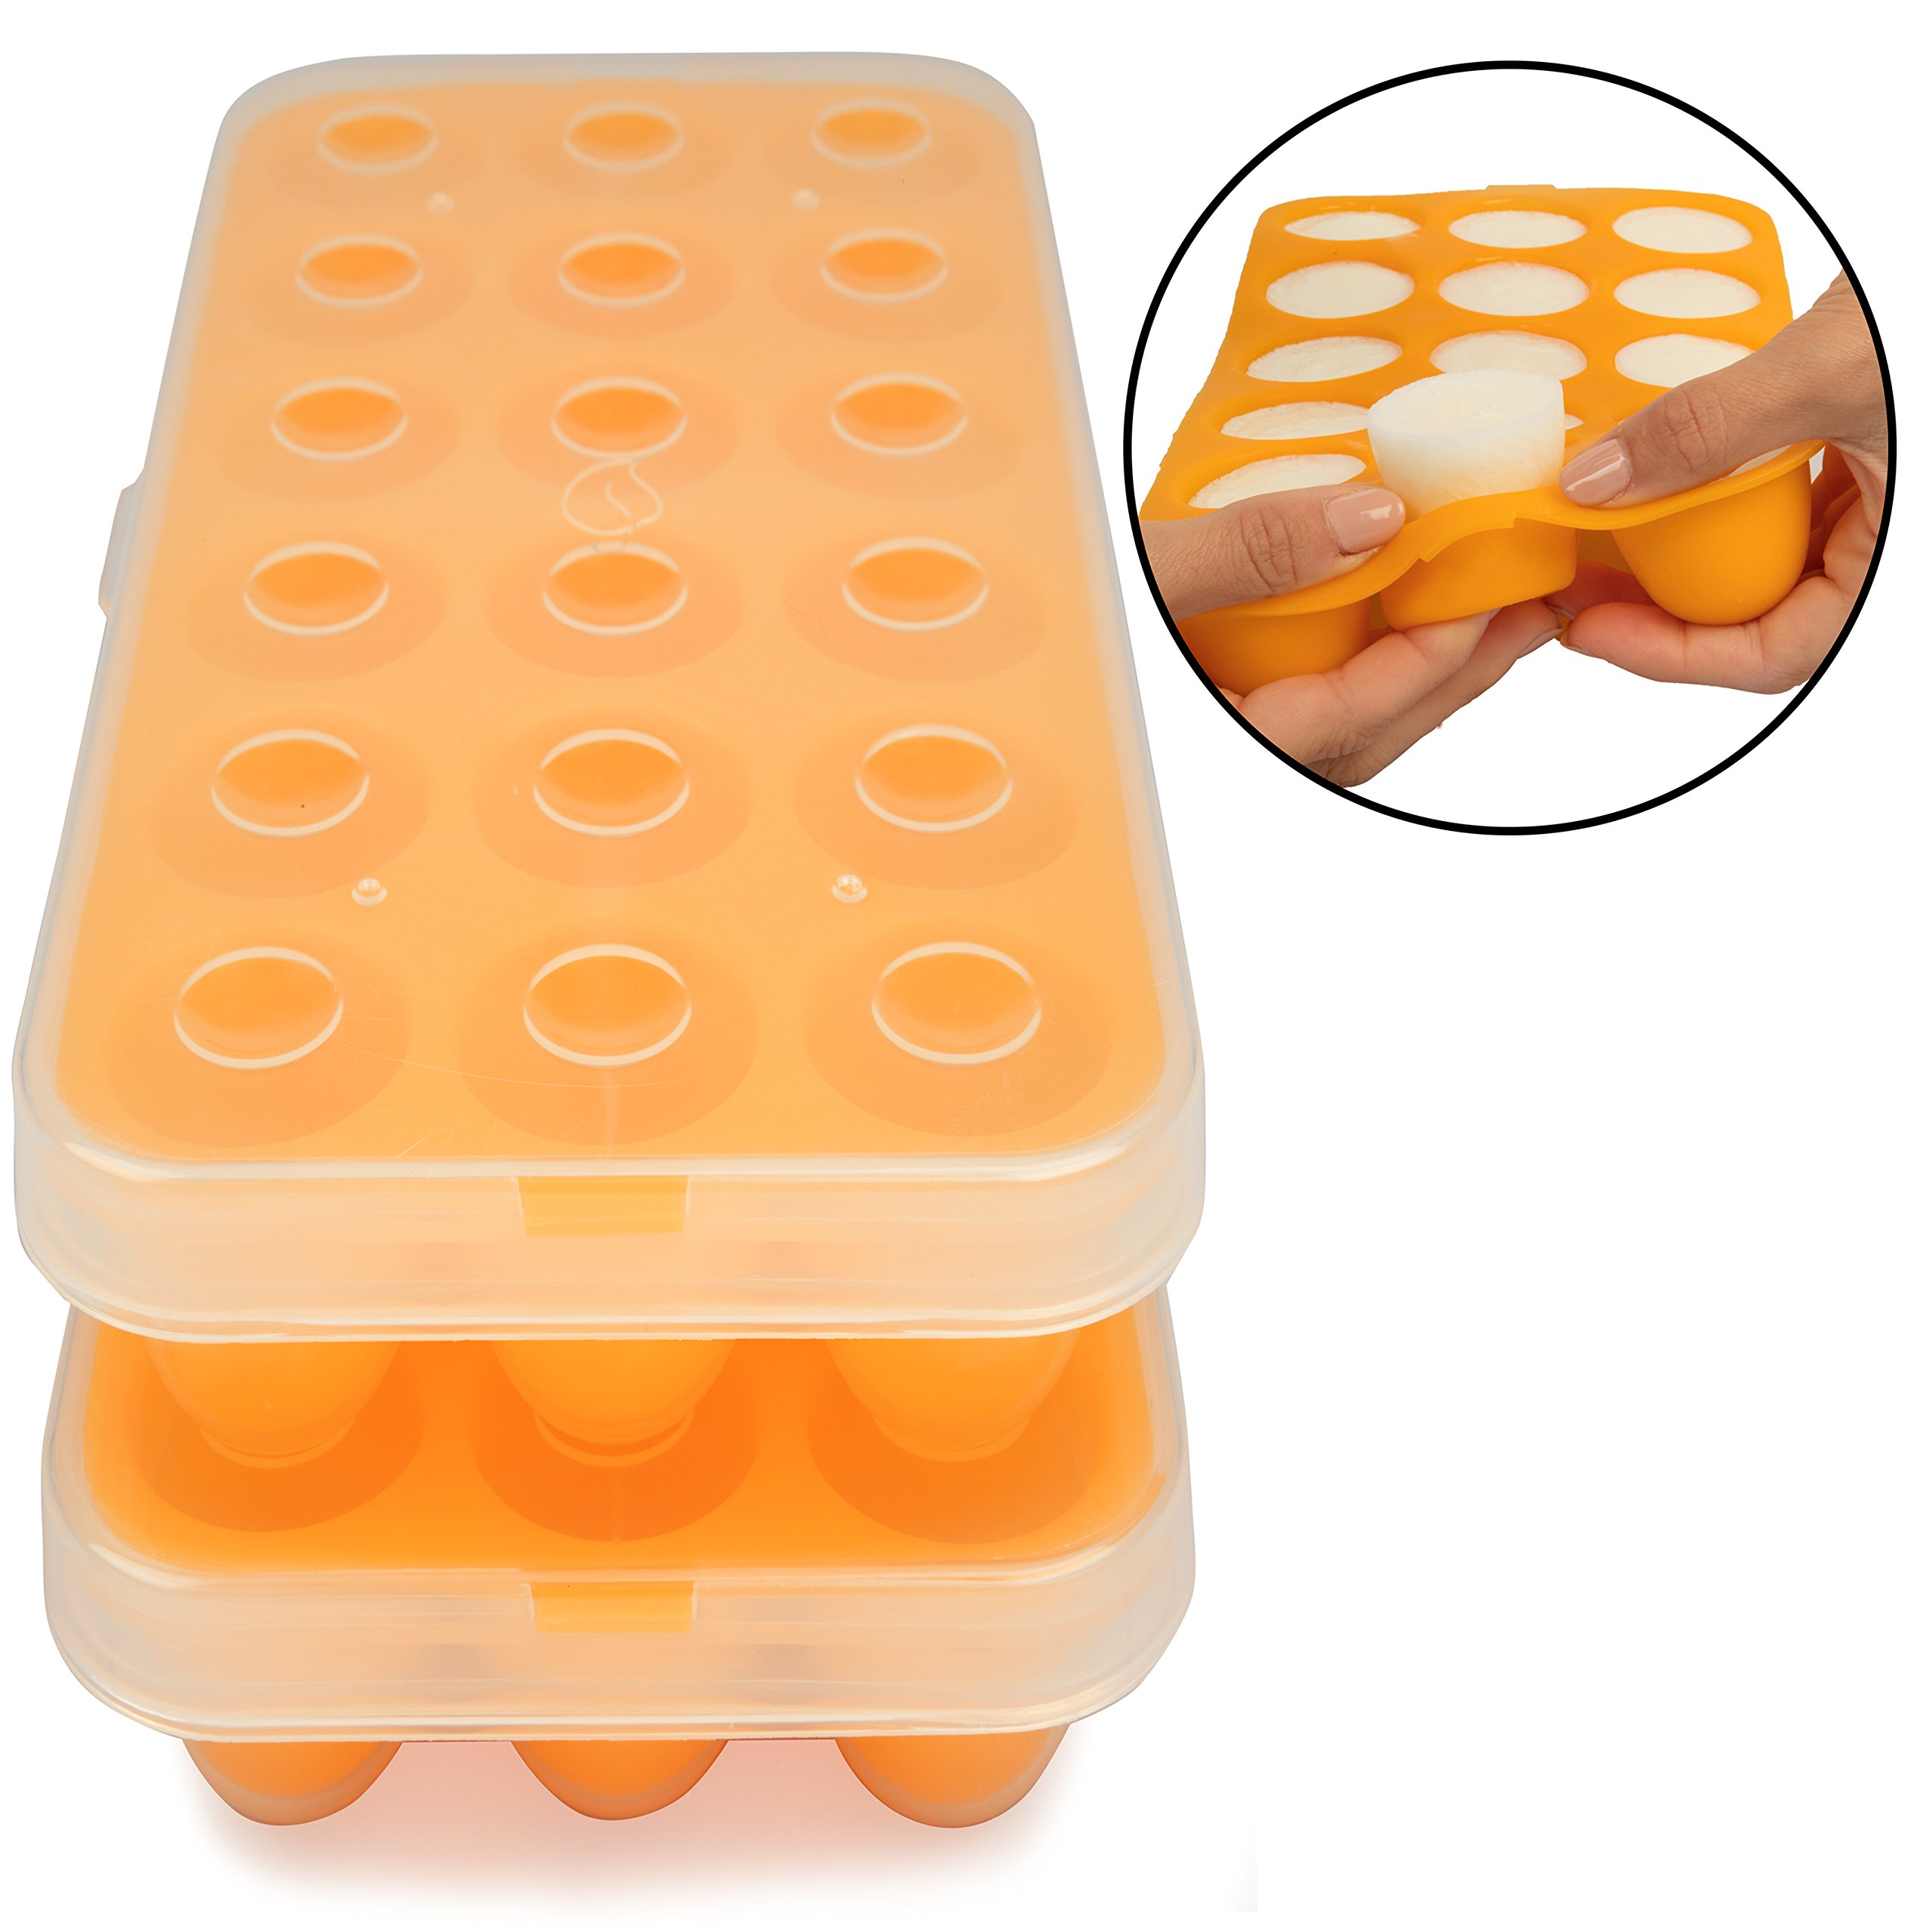 Silicone Baby Food Storage Tray (2 Pack) - Pop Out 1oz Portion Silicone Freezer Tray - Non Toxic, BPA & PVC Free by Sprout Cups